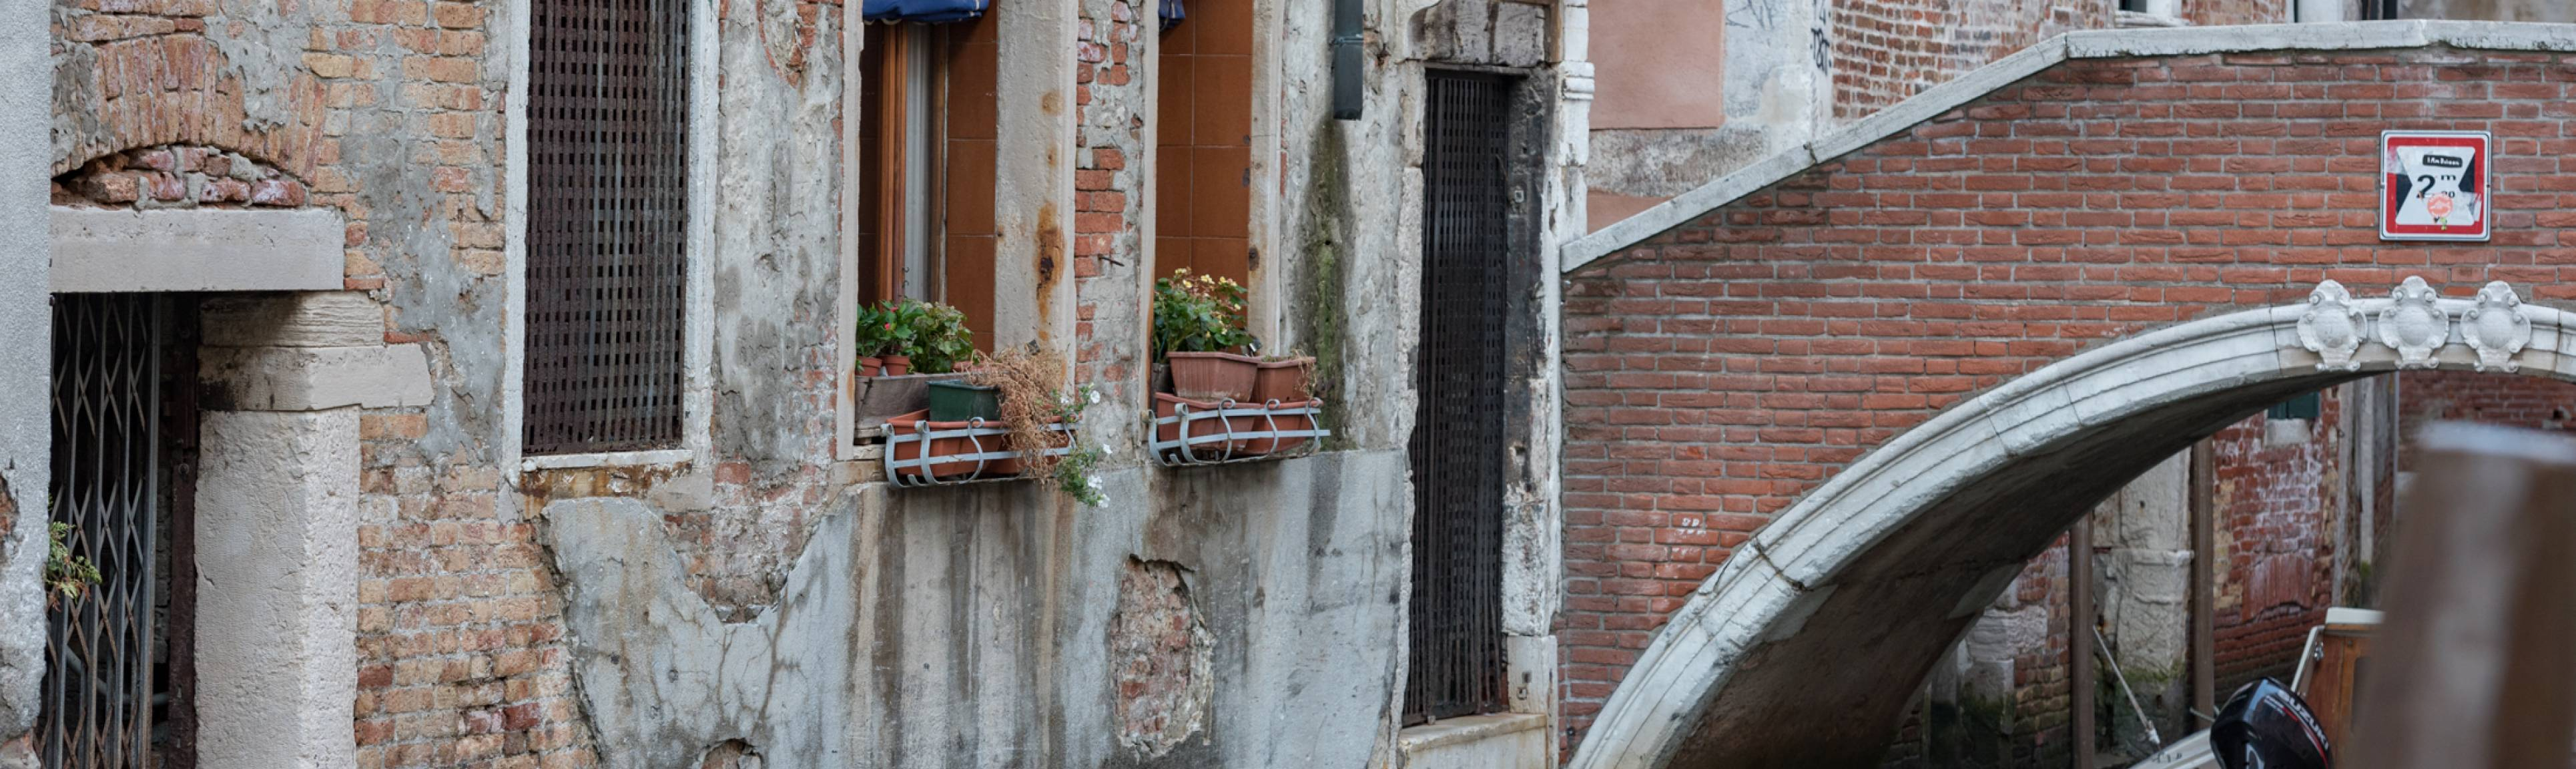 View of bridge & buildings along the small canals in Venice, Italy